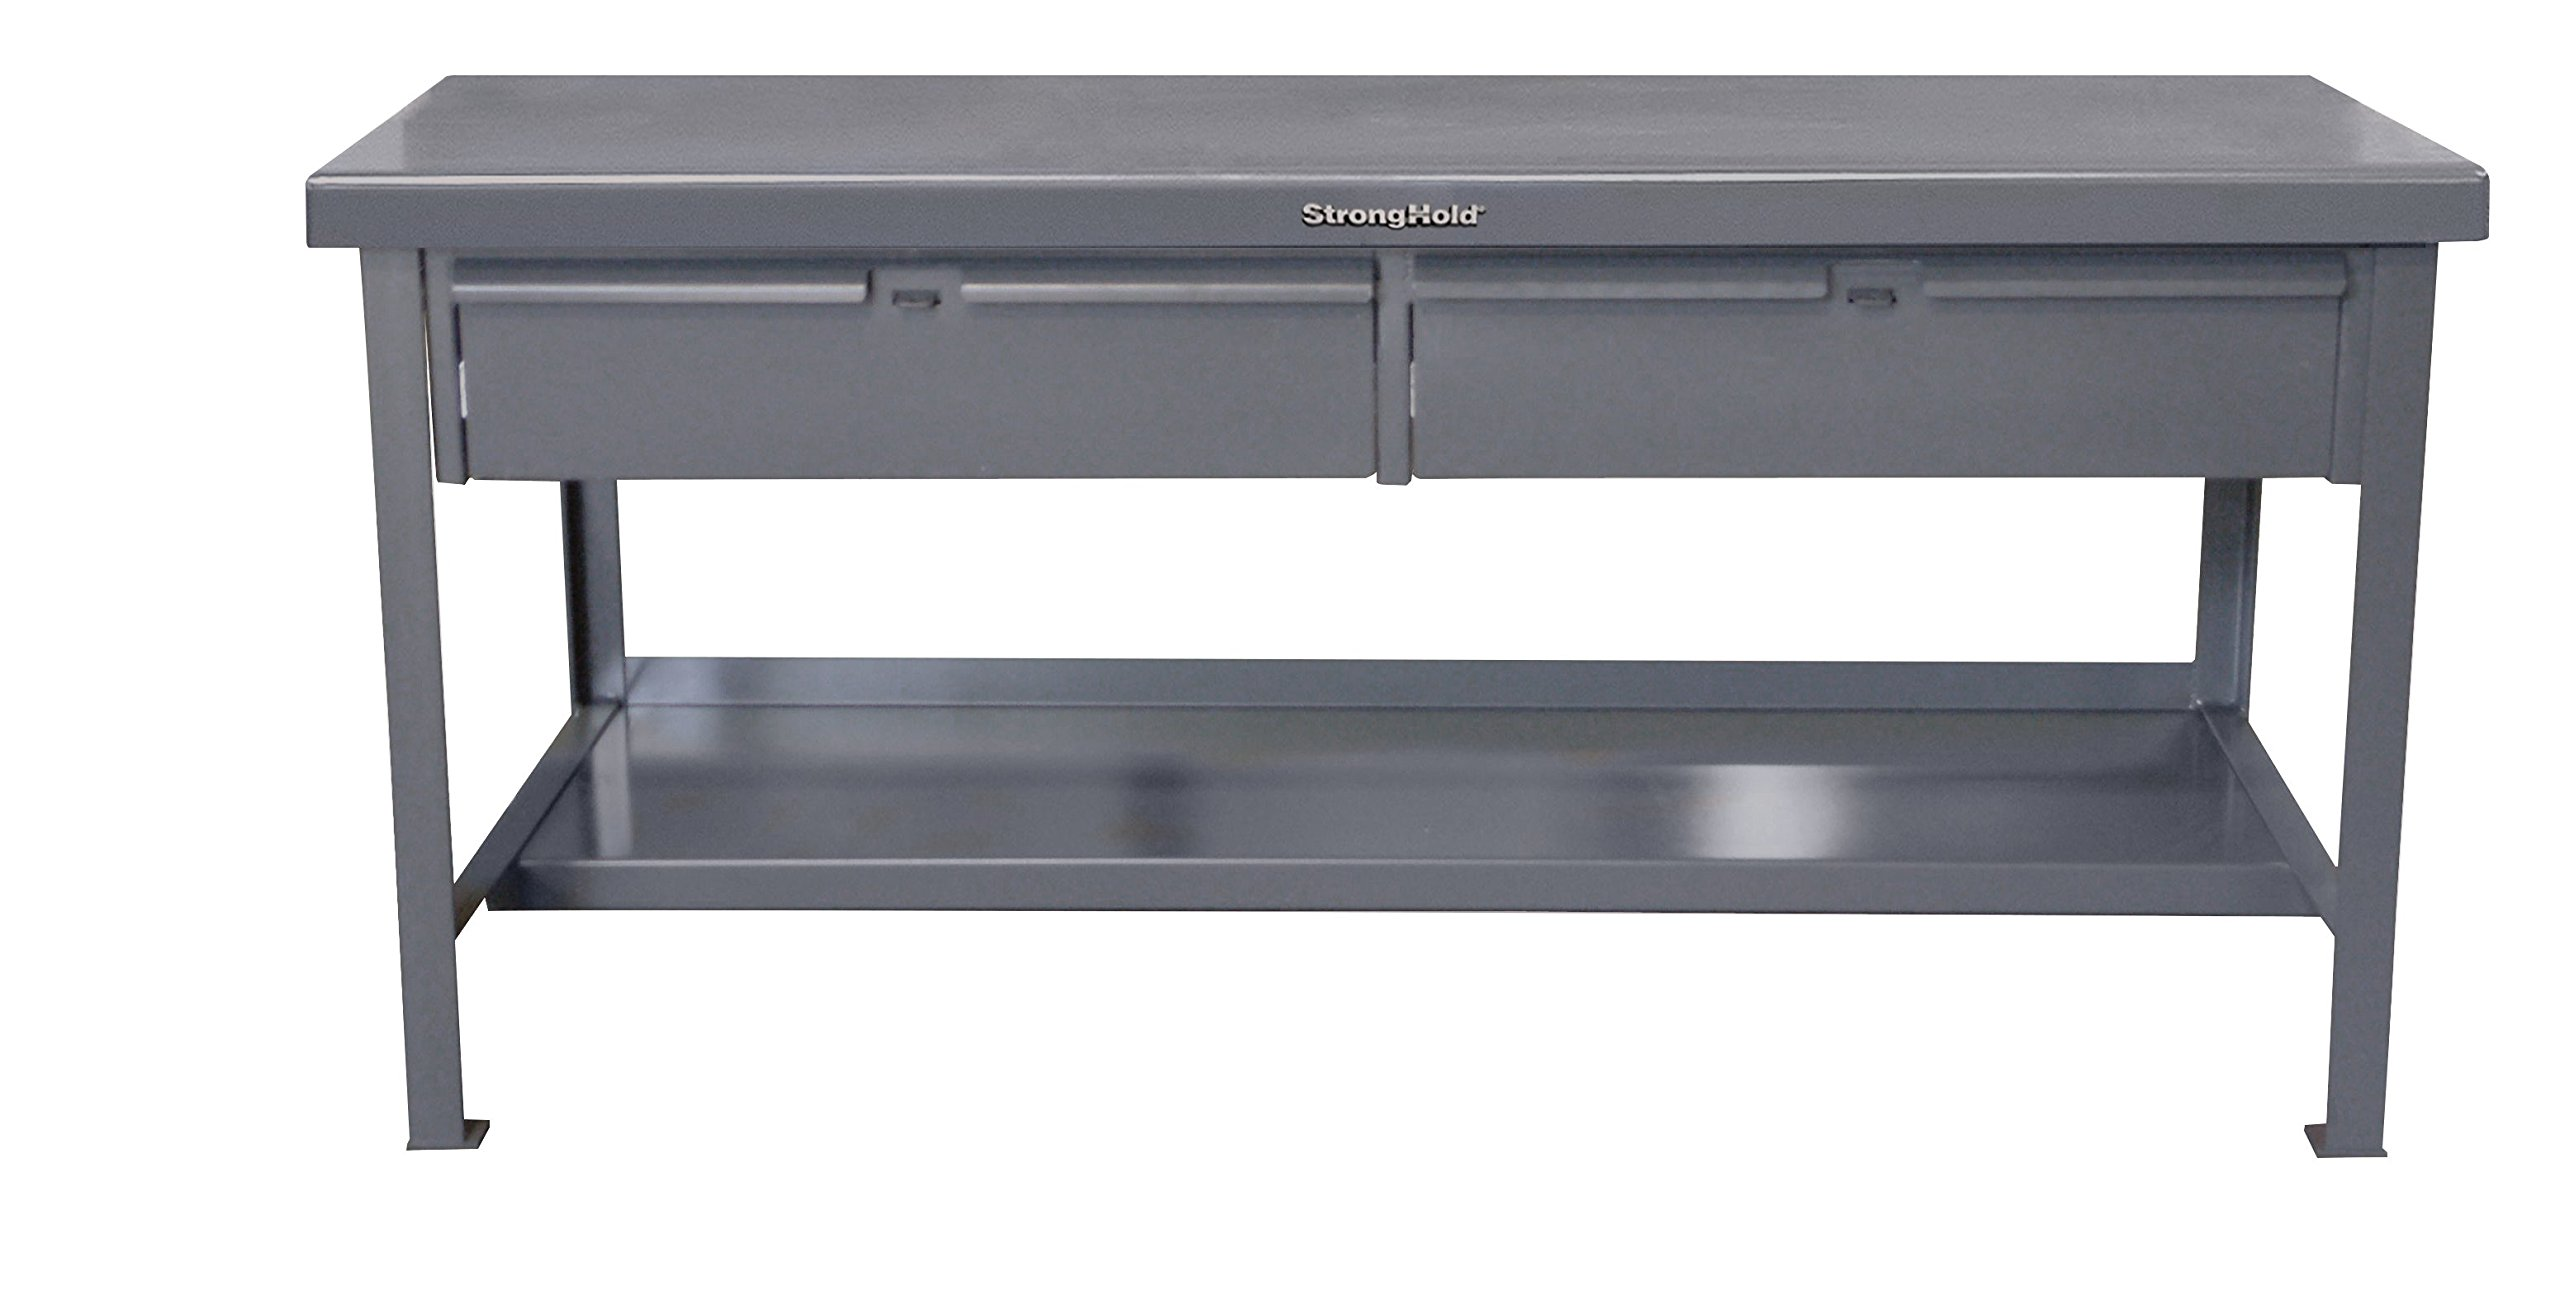 Strong Hold, 48''W x 30''D x 34''H, Workbench / Table, Heavy-Duty, Welded and Assembled, Dark Gray, 7-Gauge Steel Work Surface with 5,500 lbs. Capacity, 3 Lockable Drawers - USA